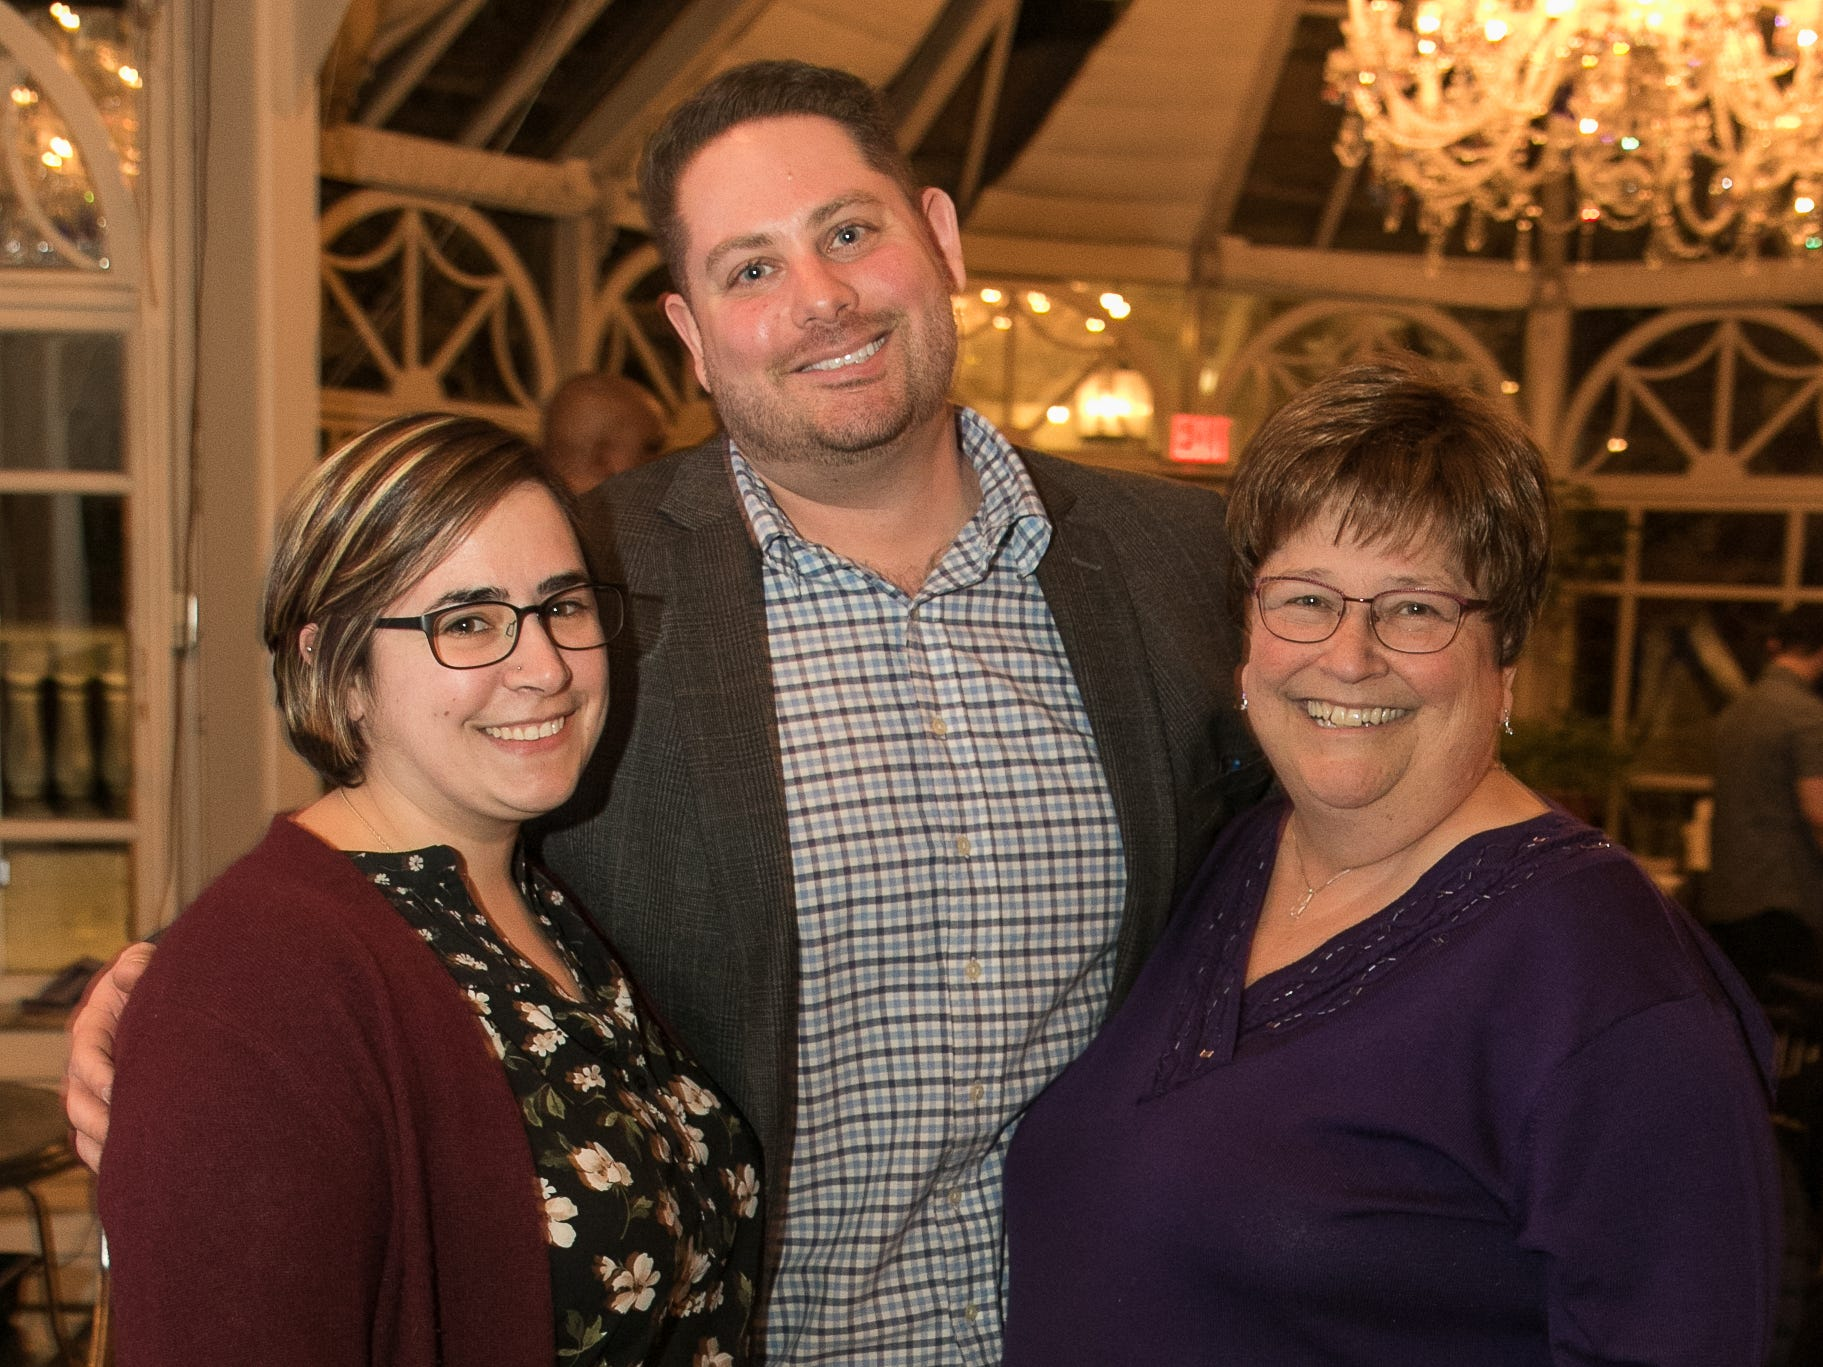 Megan Hartmann, Matt Lucivero, Nancy Mecca. Rebuilding Together North Jersey held its third annual Beefsteak Dinner with former NY Giants Howard Cross, Amani Toomer, and Sam Garnes at the Brownstone in Paterson. 03/07/2019